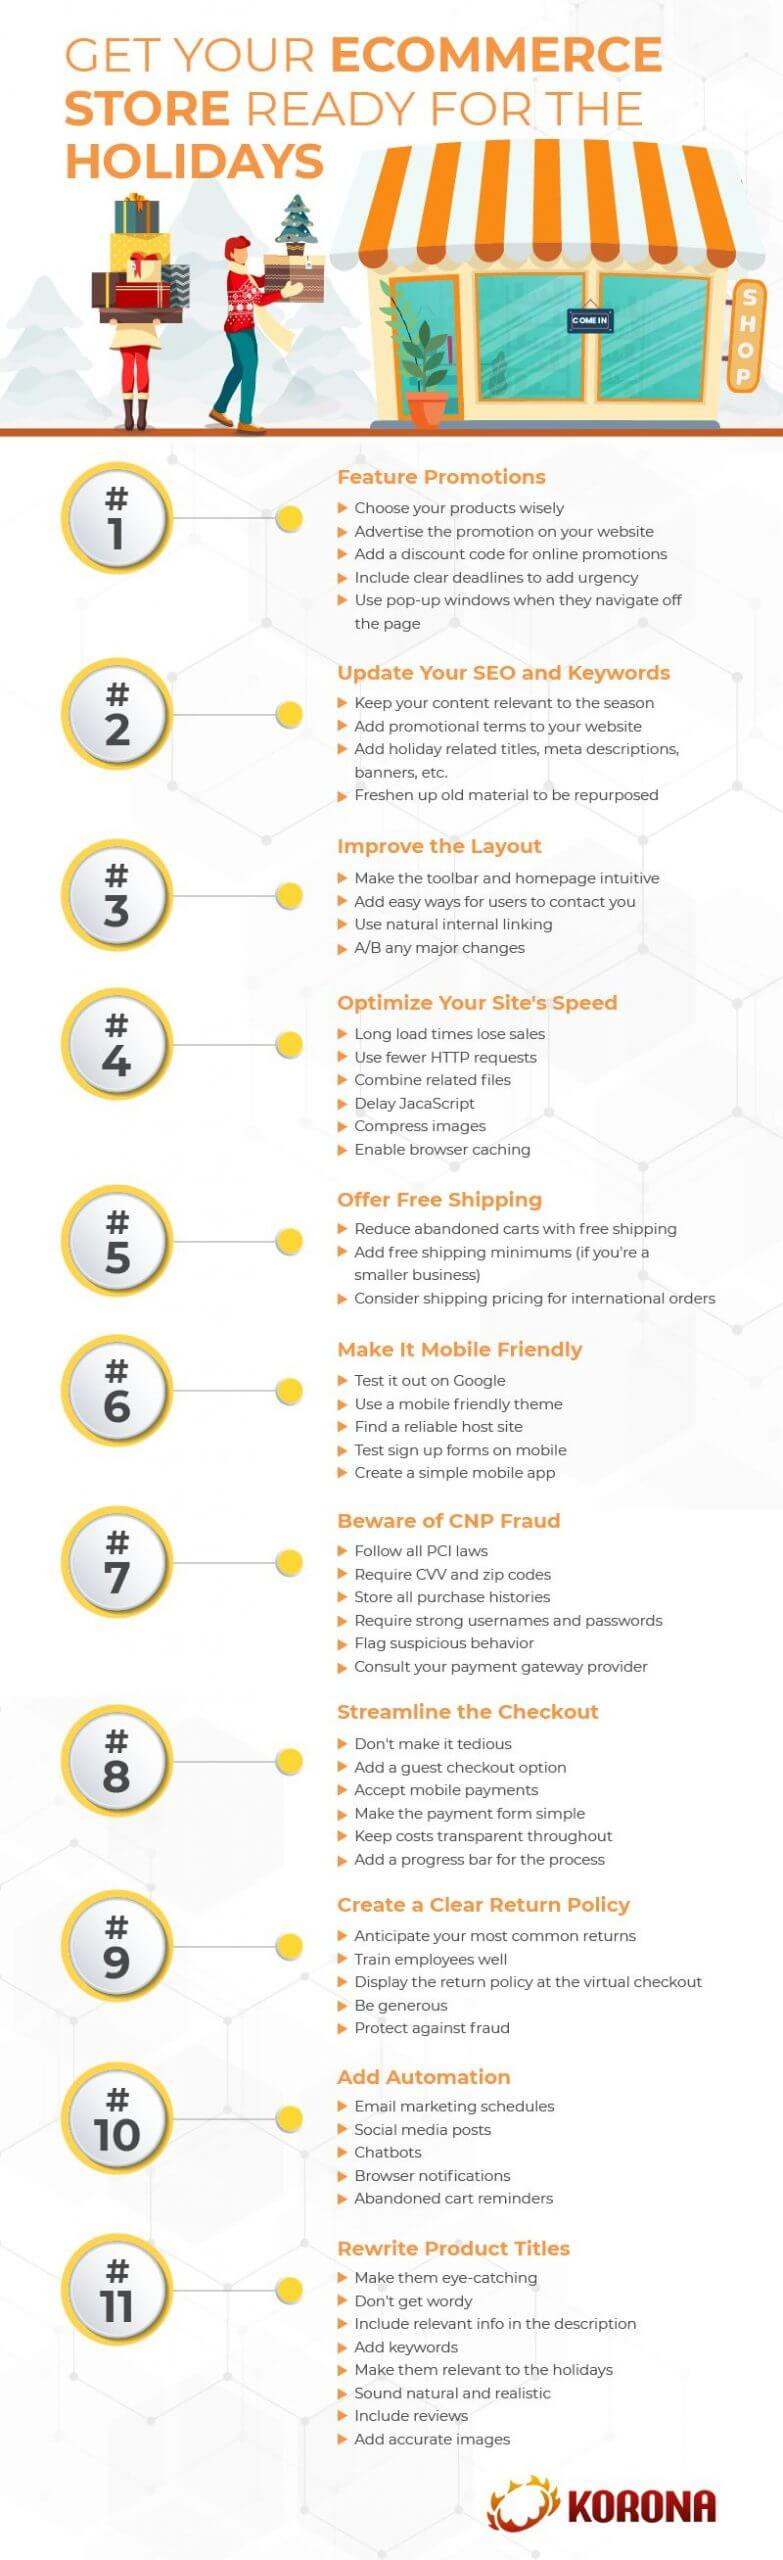 Infograph listing 11 ways that retailers can prepare for the holiday season